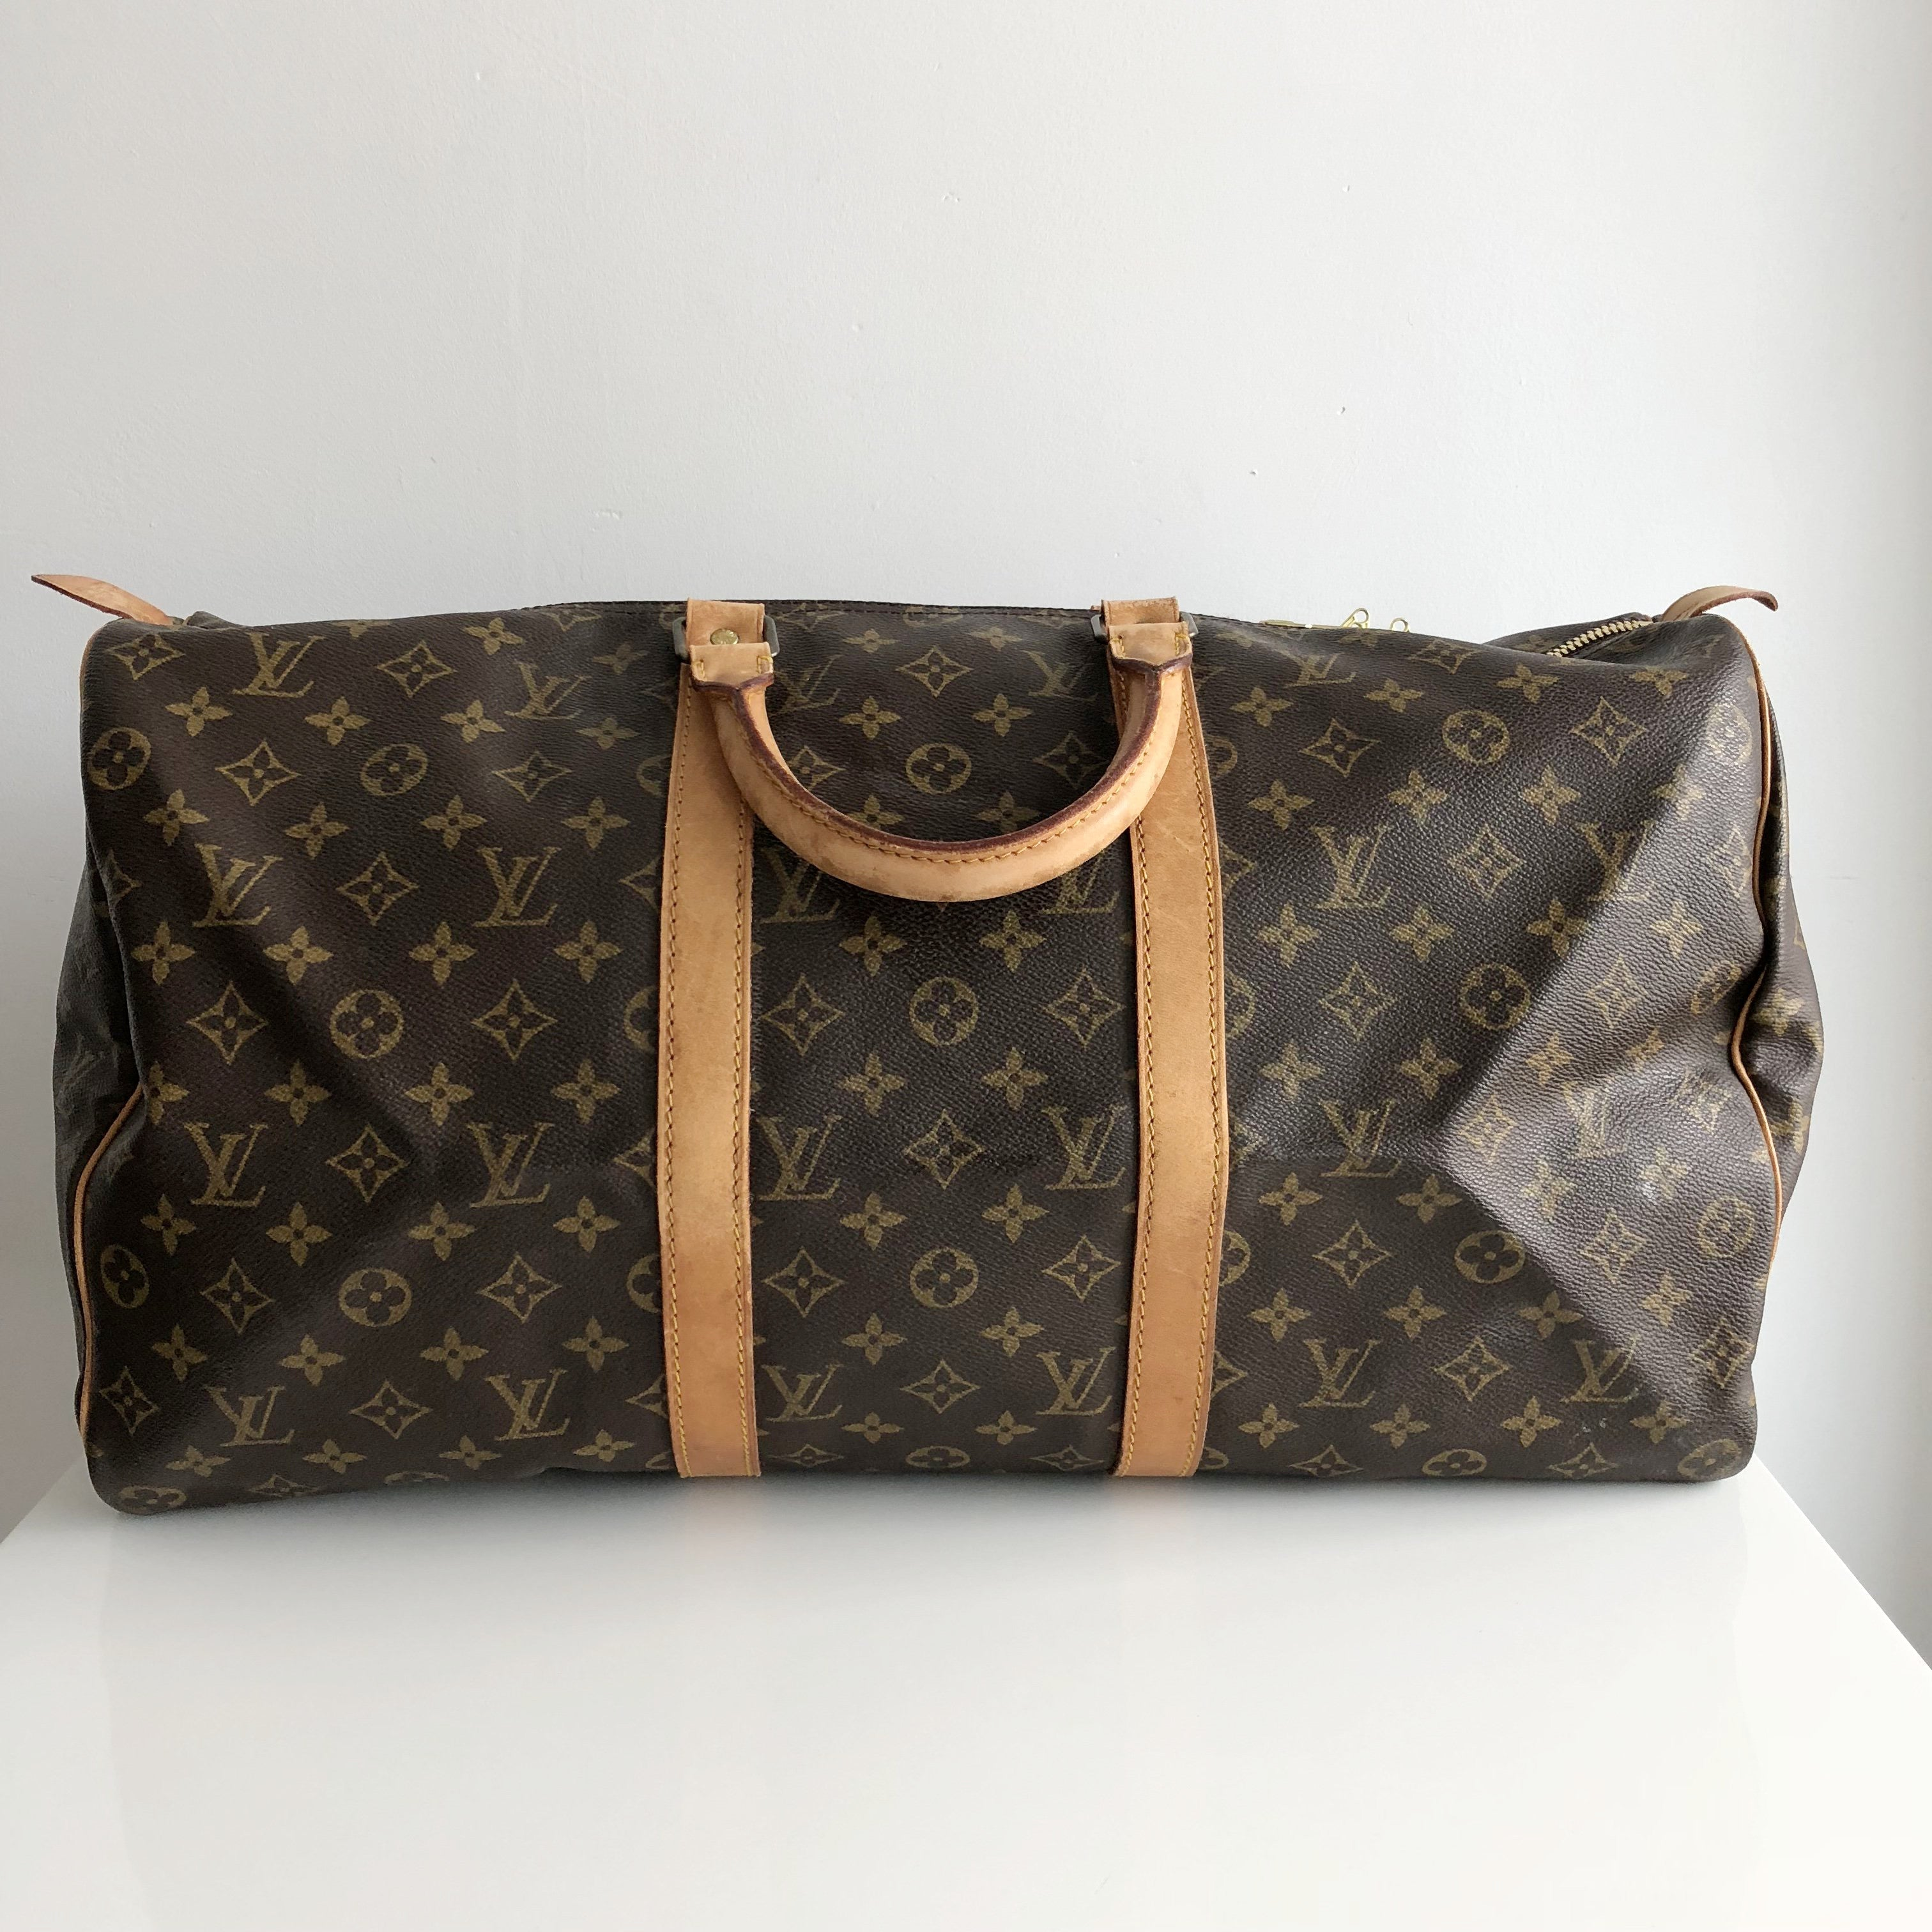 Authentic LOUIS VUITTON Vintage Keepall 50